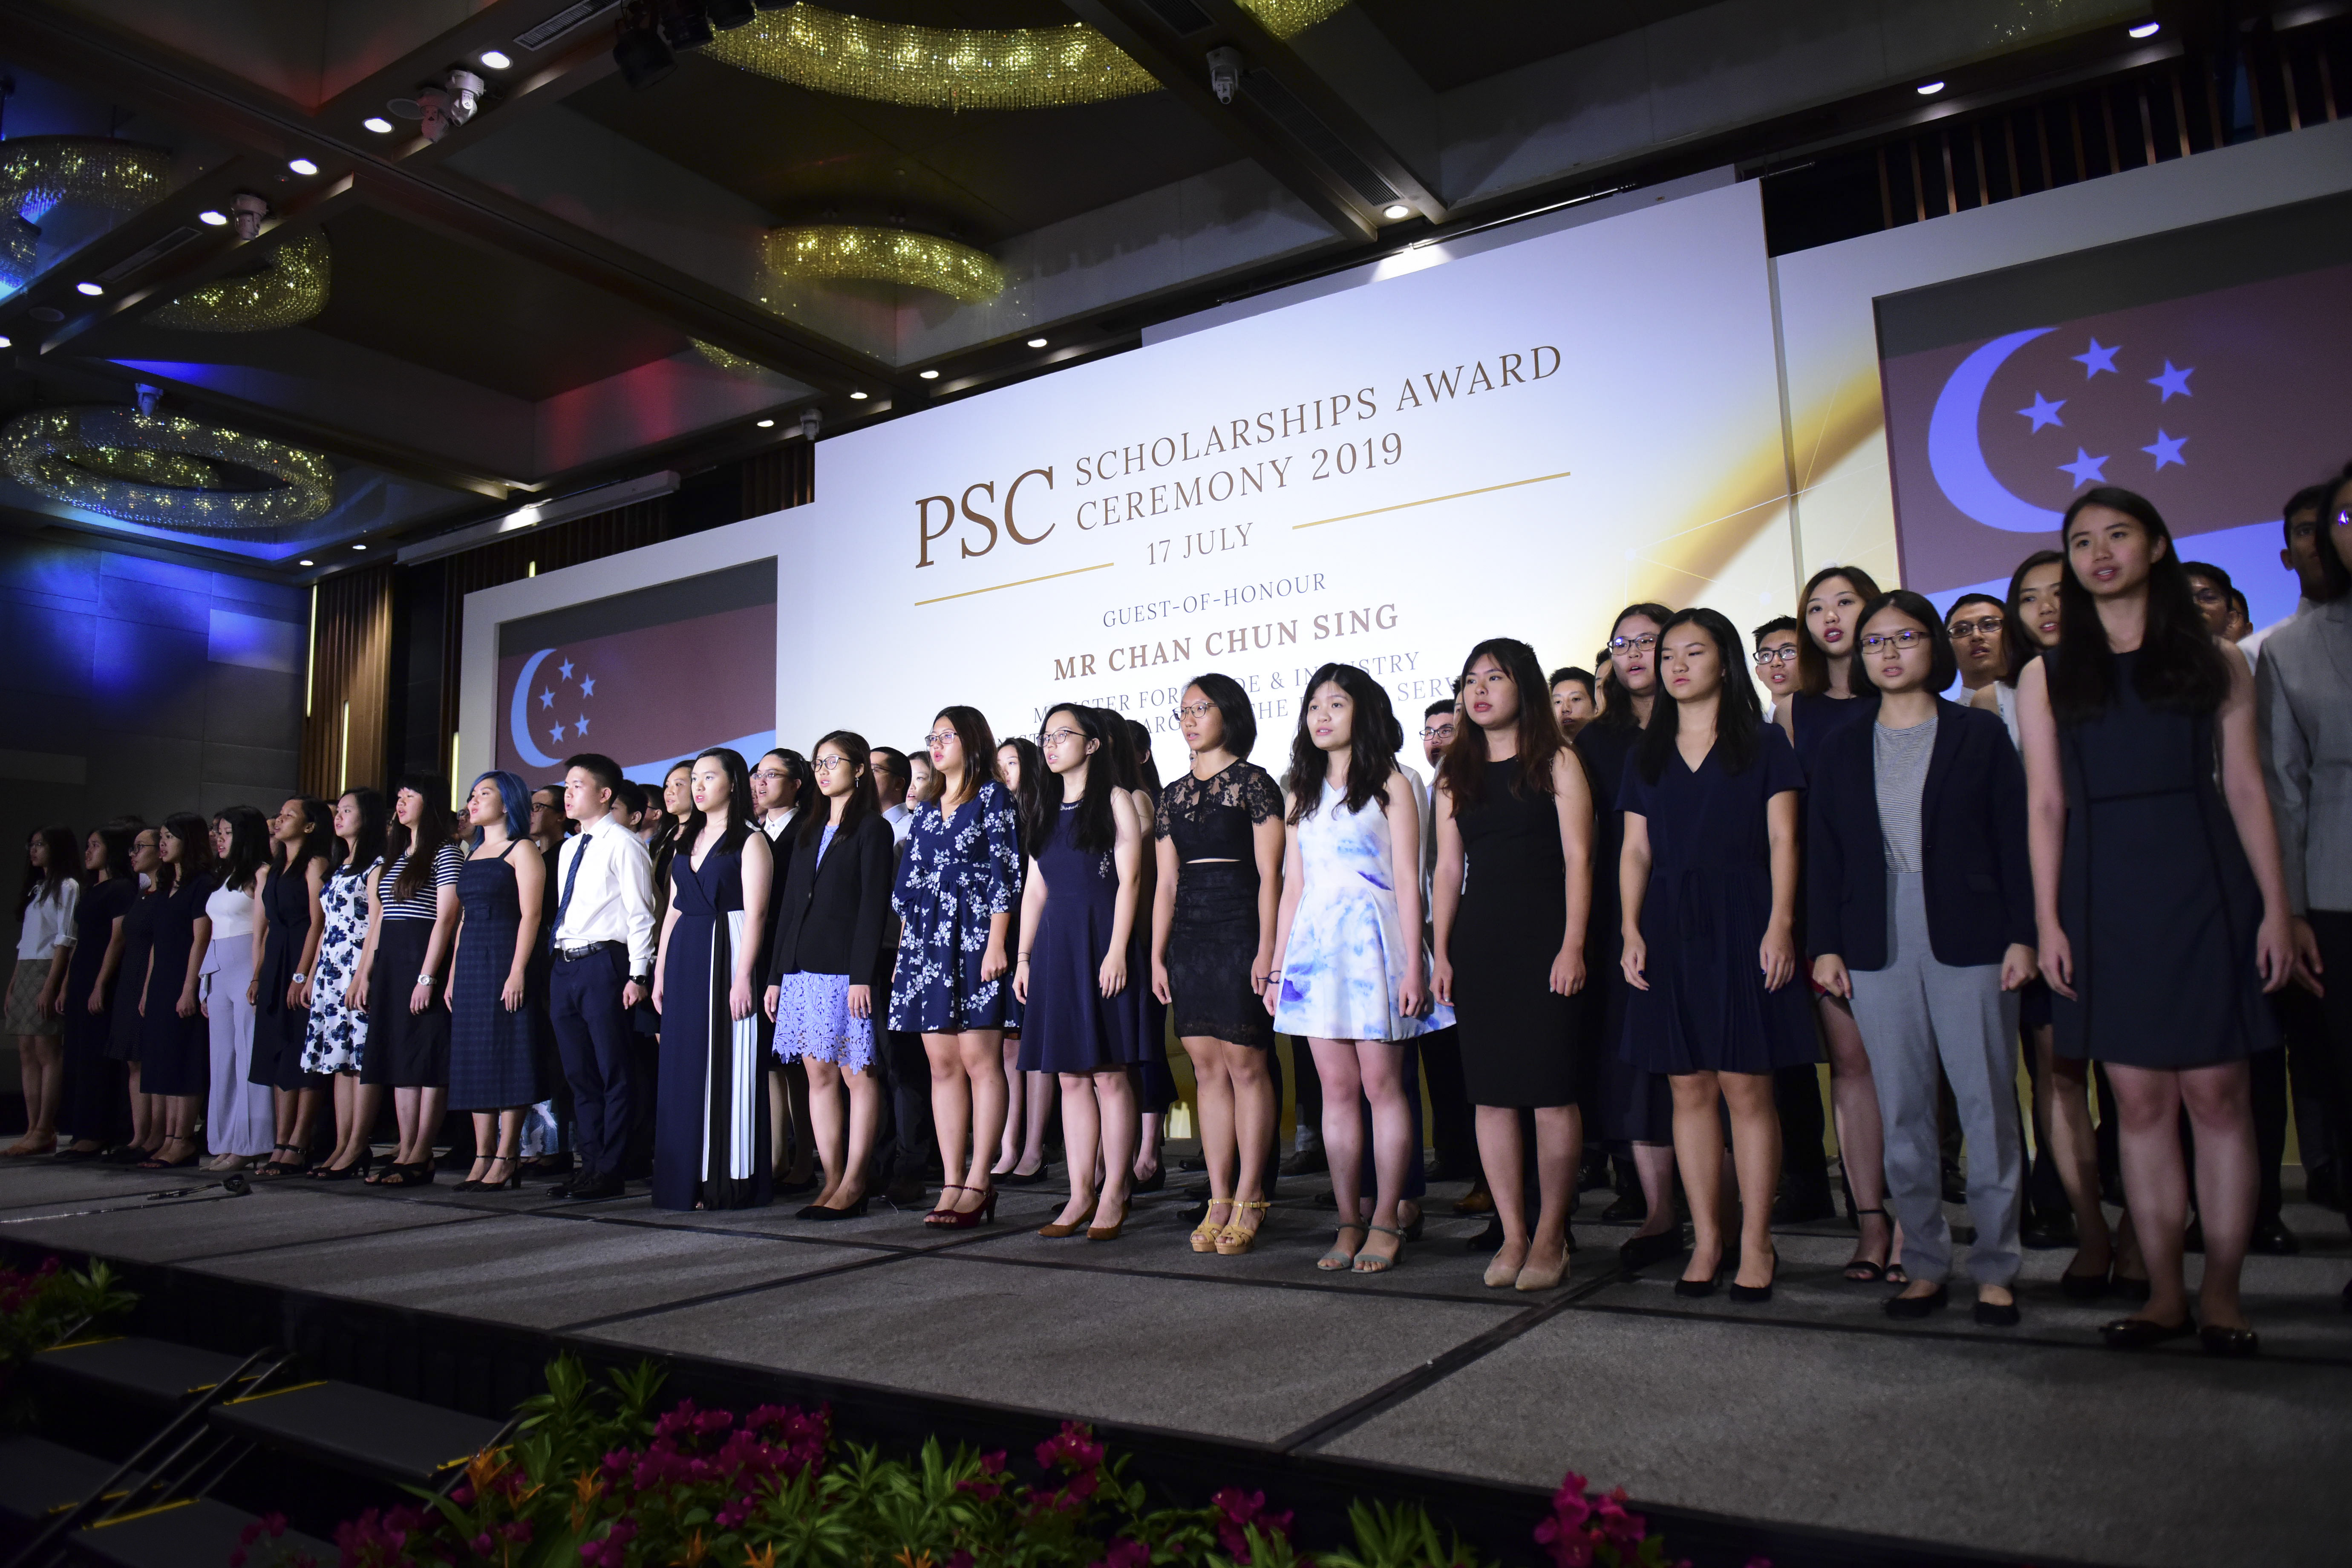 alt text - scholarship recipients singing national anthem at the 2019 PSC Scholarships Award Ceremony